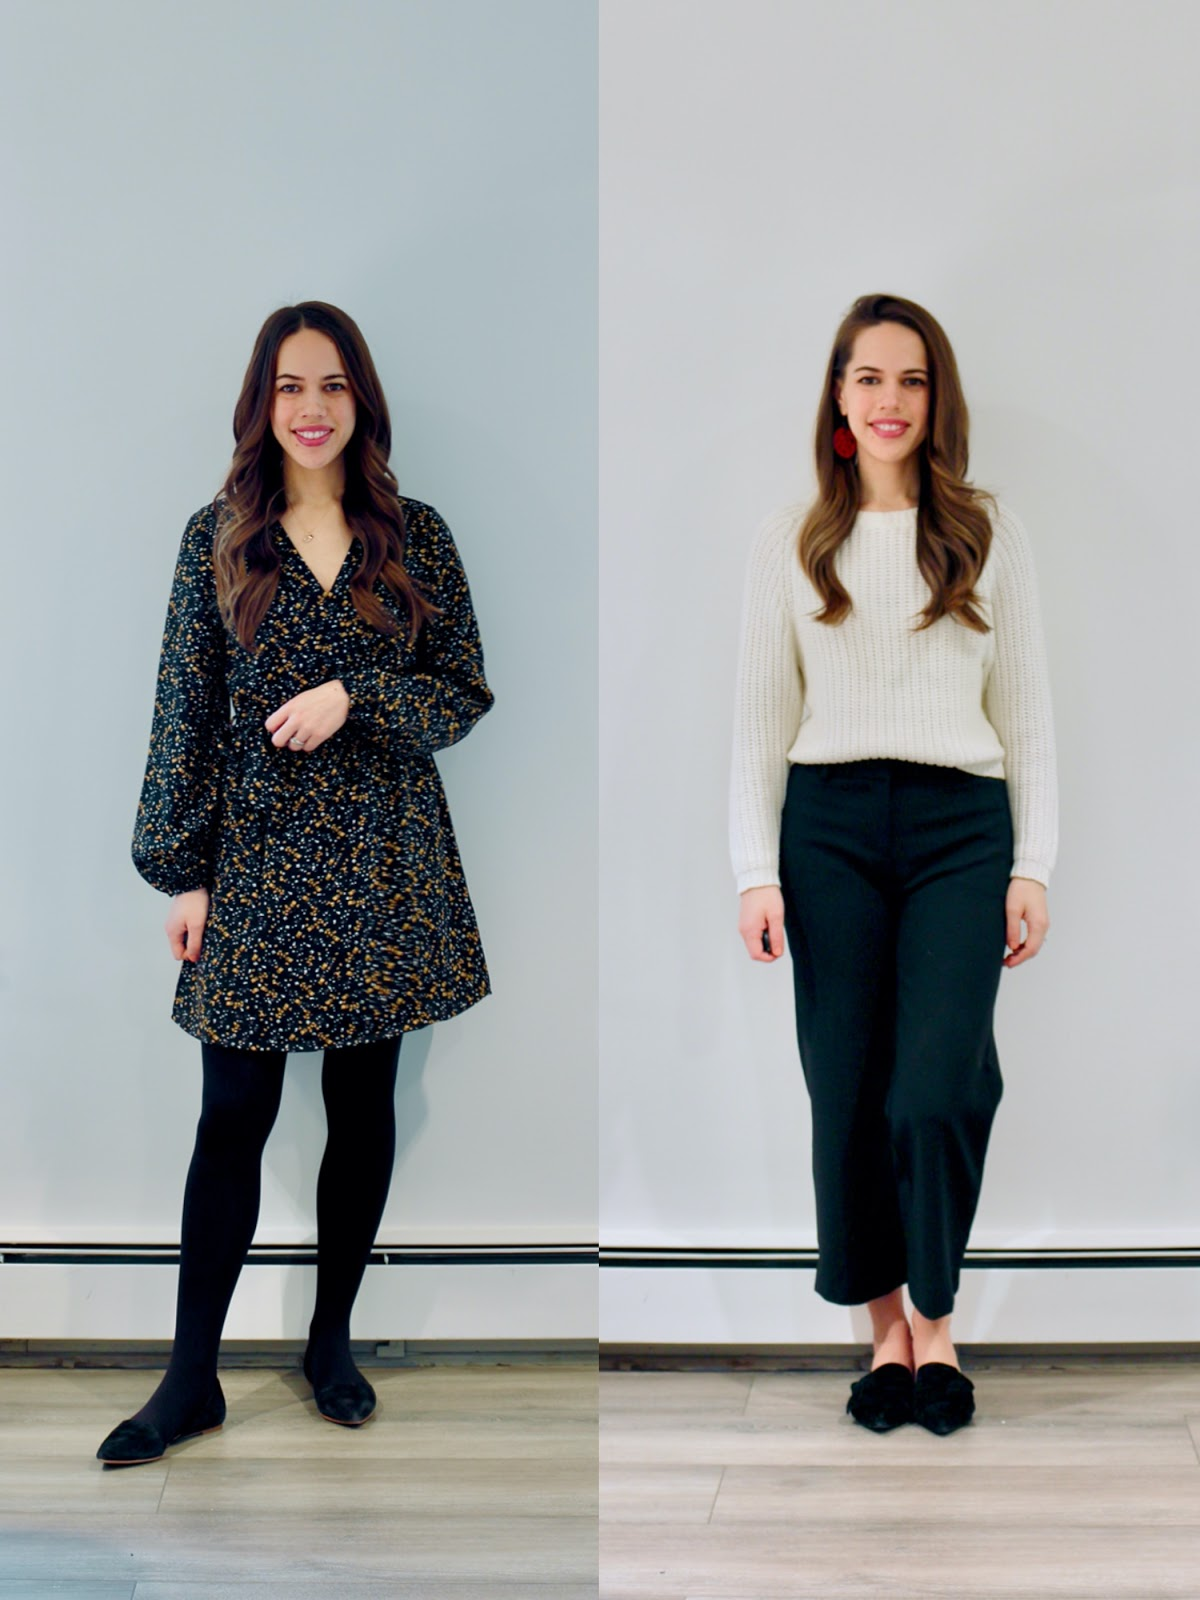 Jules in Flats - February Outfits Week 4 (Business Casual Winter Workwear on a Budget)